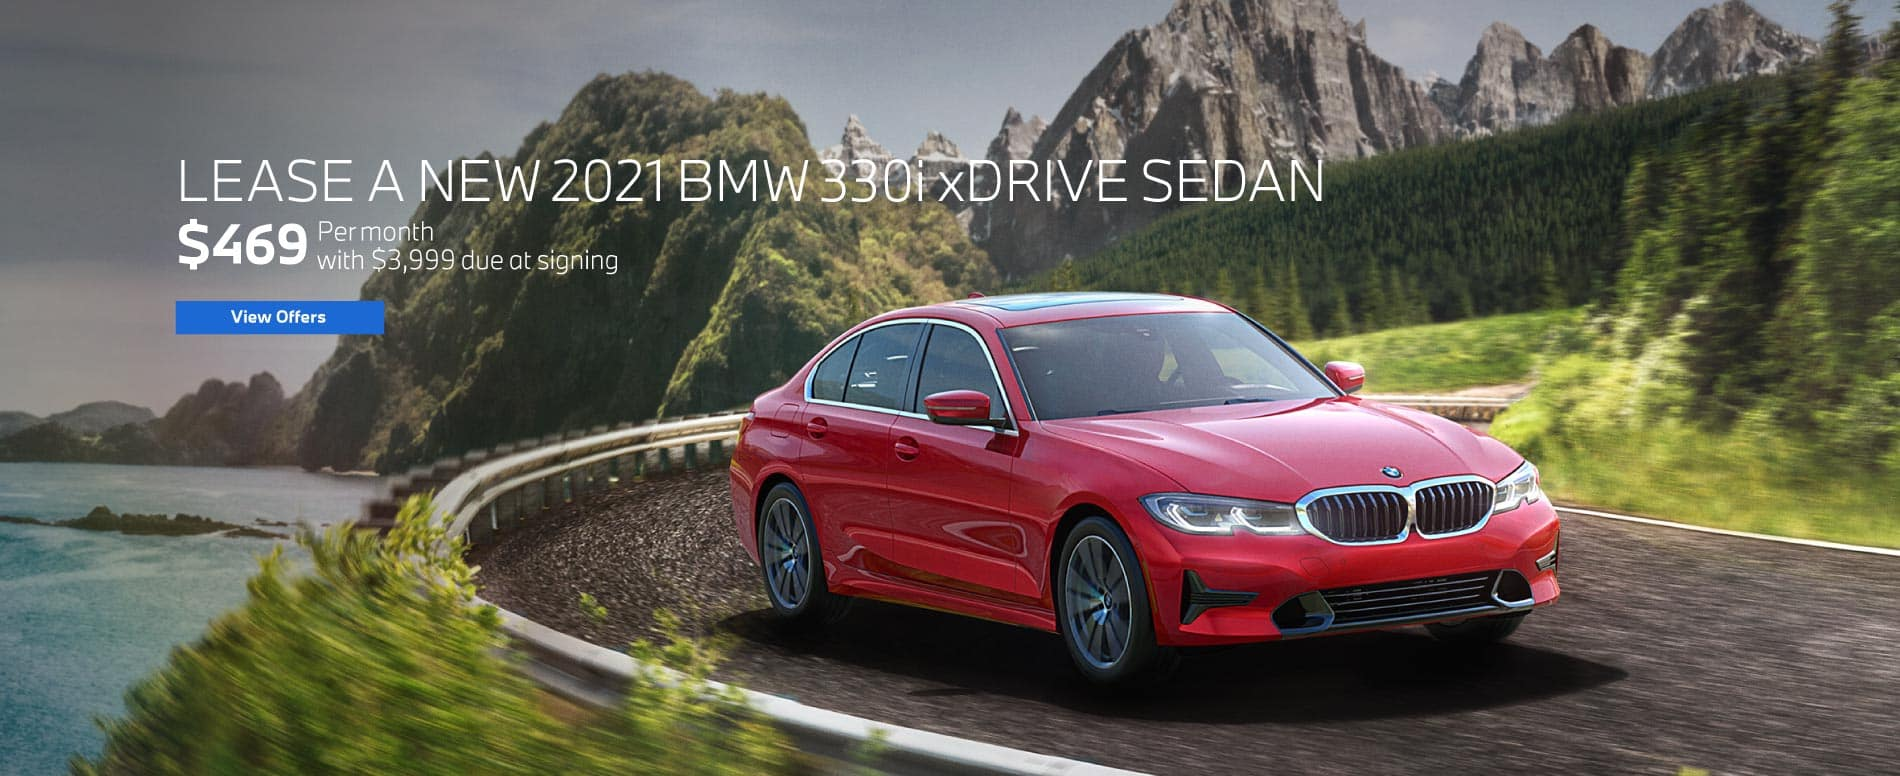 Lease a 2021 330i xDrive for $469 a month | View Offers